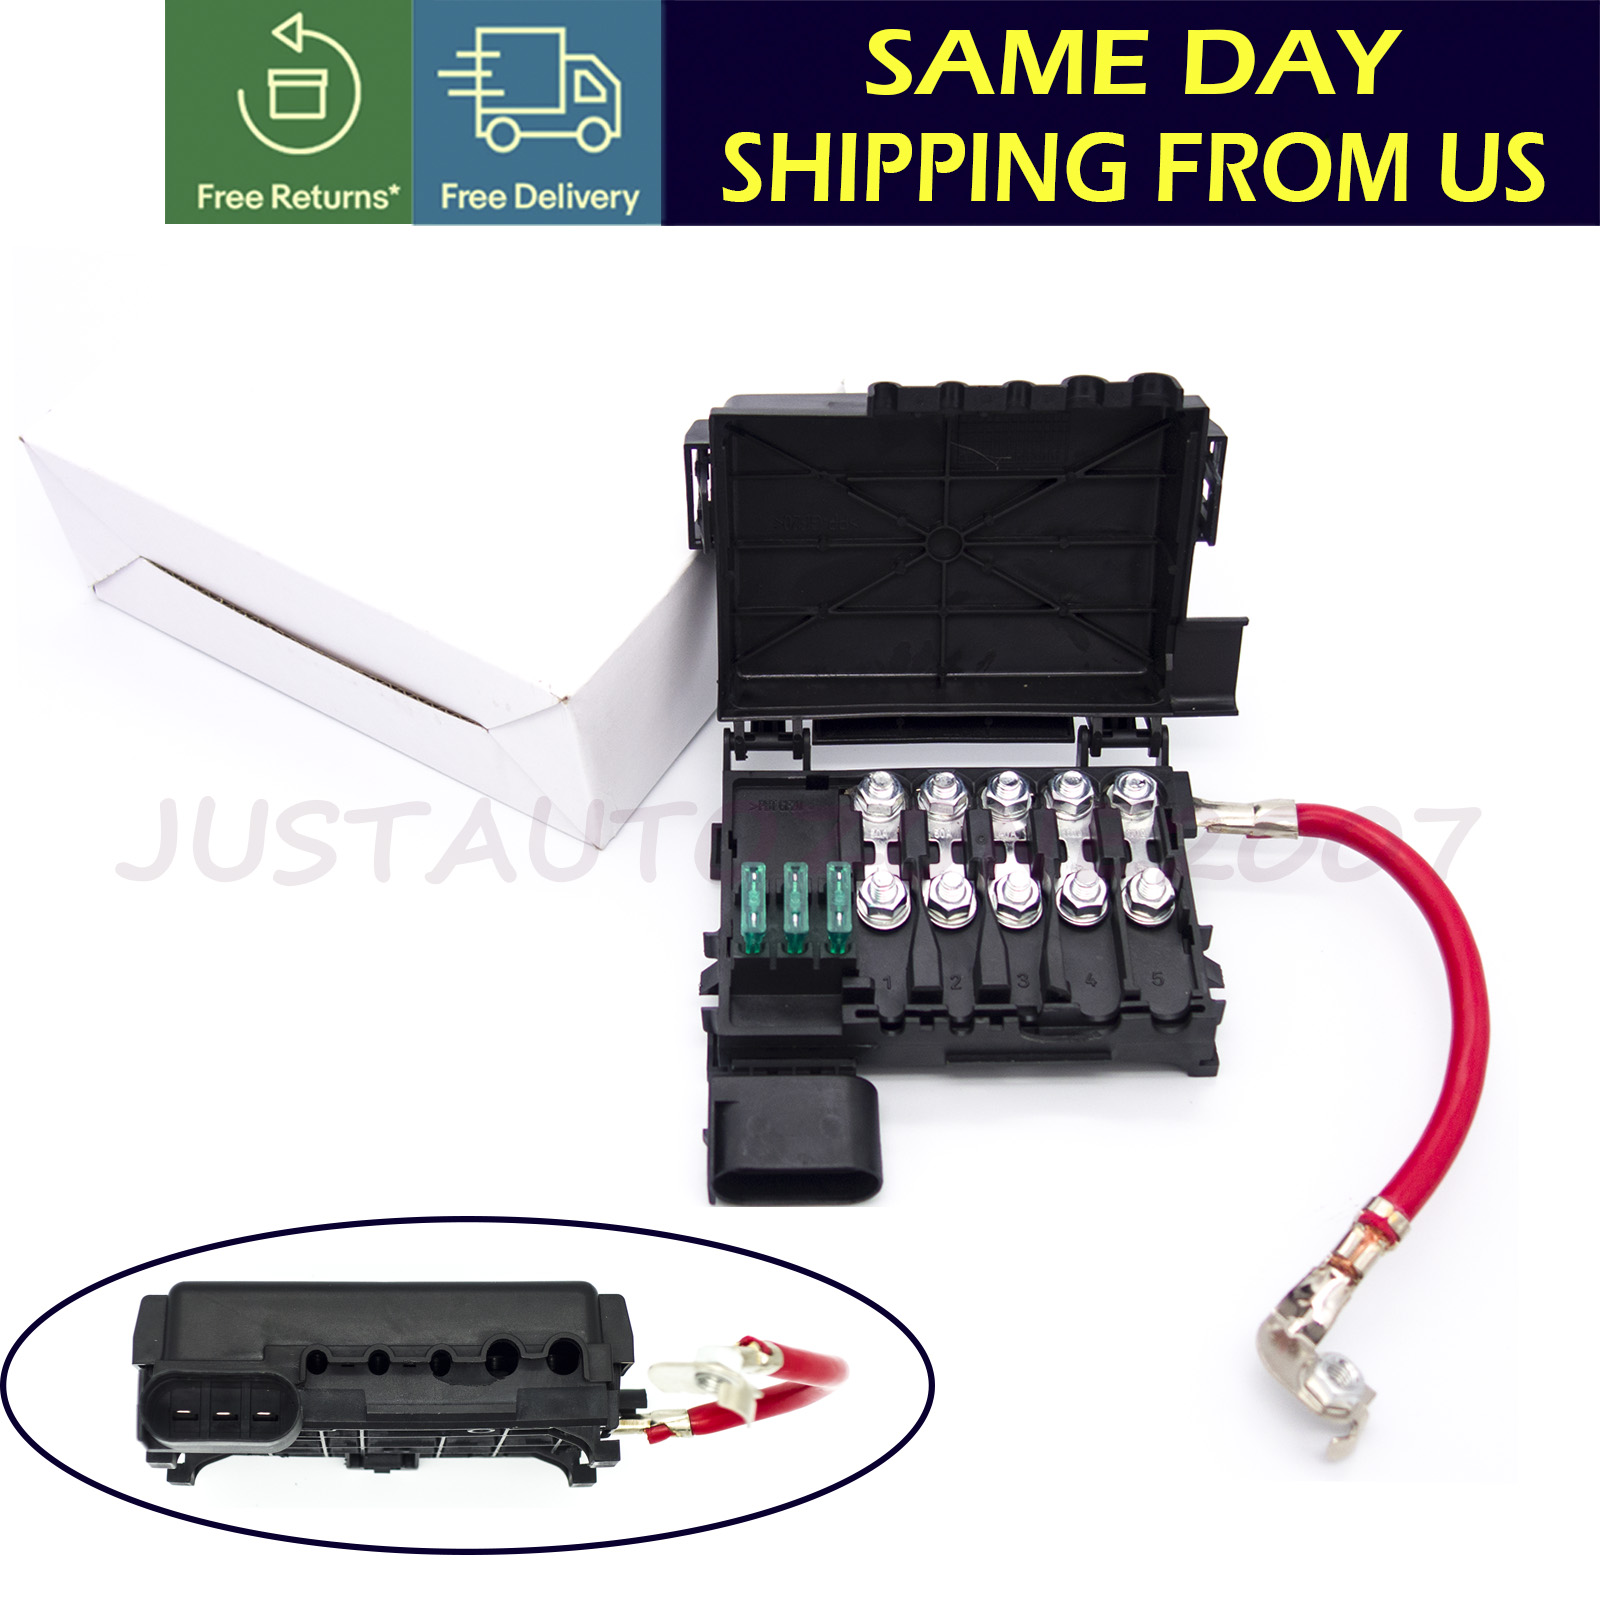 Details about Fits For Jetta Golf Mk4 Beetle Fuse Box Battery Terminal on 2005 silverado fuse box, 2005 suburban fuse box, 1999 cadillac eldorado fuse box, 05 sierra fuse panel box, 2007 chevy silverado fuse box, 2008 chevy trailblazer ss fuse box, 05 silverado fuse box, 02 suburban 5.3l fuse box, 02 cadillac escalade fuse box, 2007 corolla fuse box, of a 2004 pacifica fuse box,